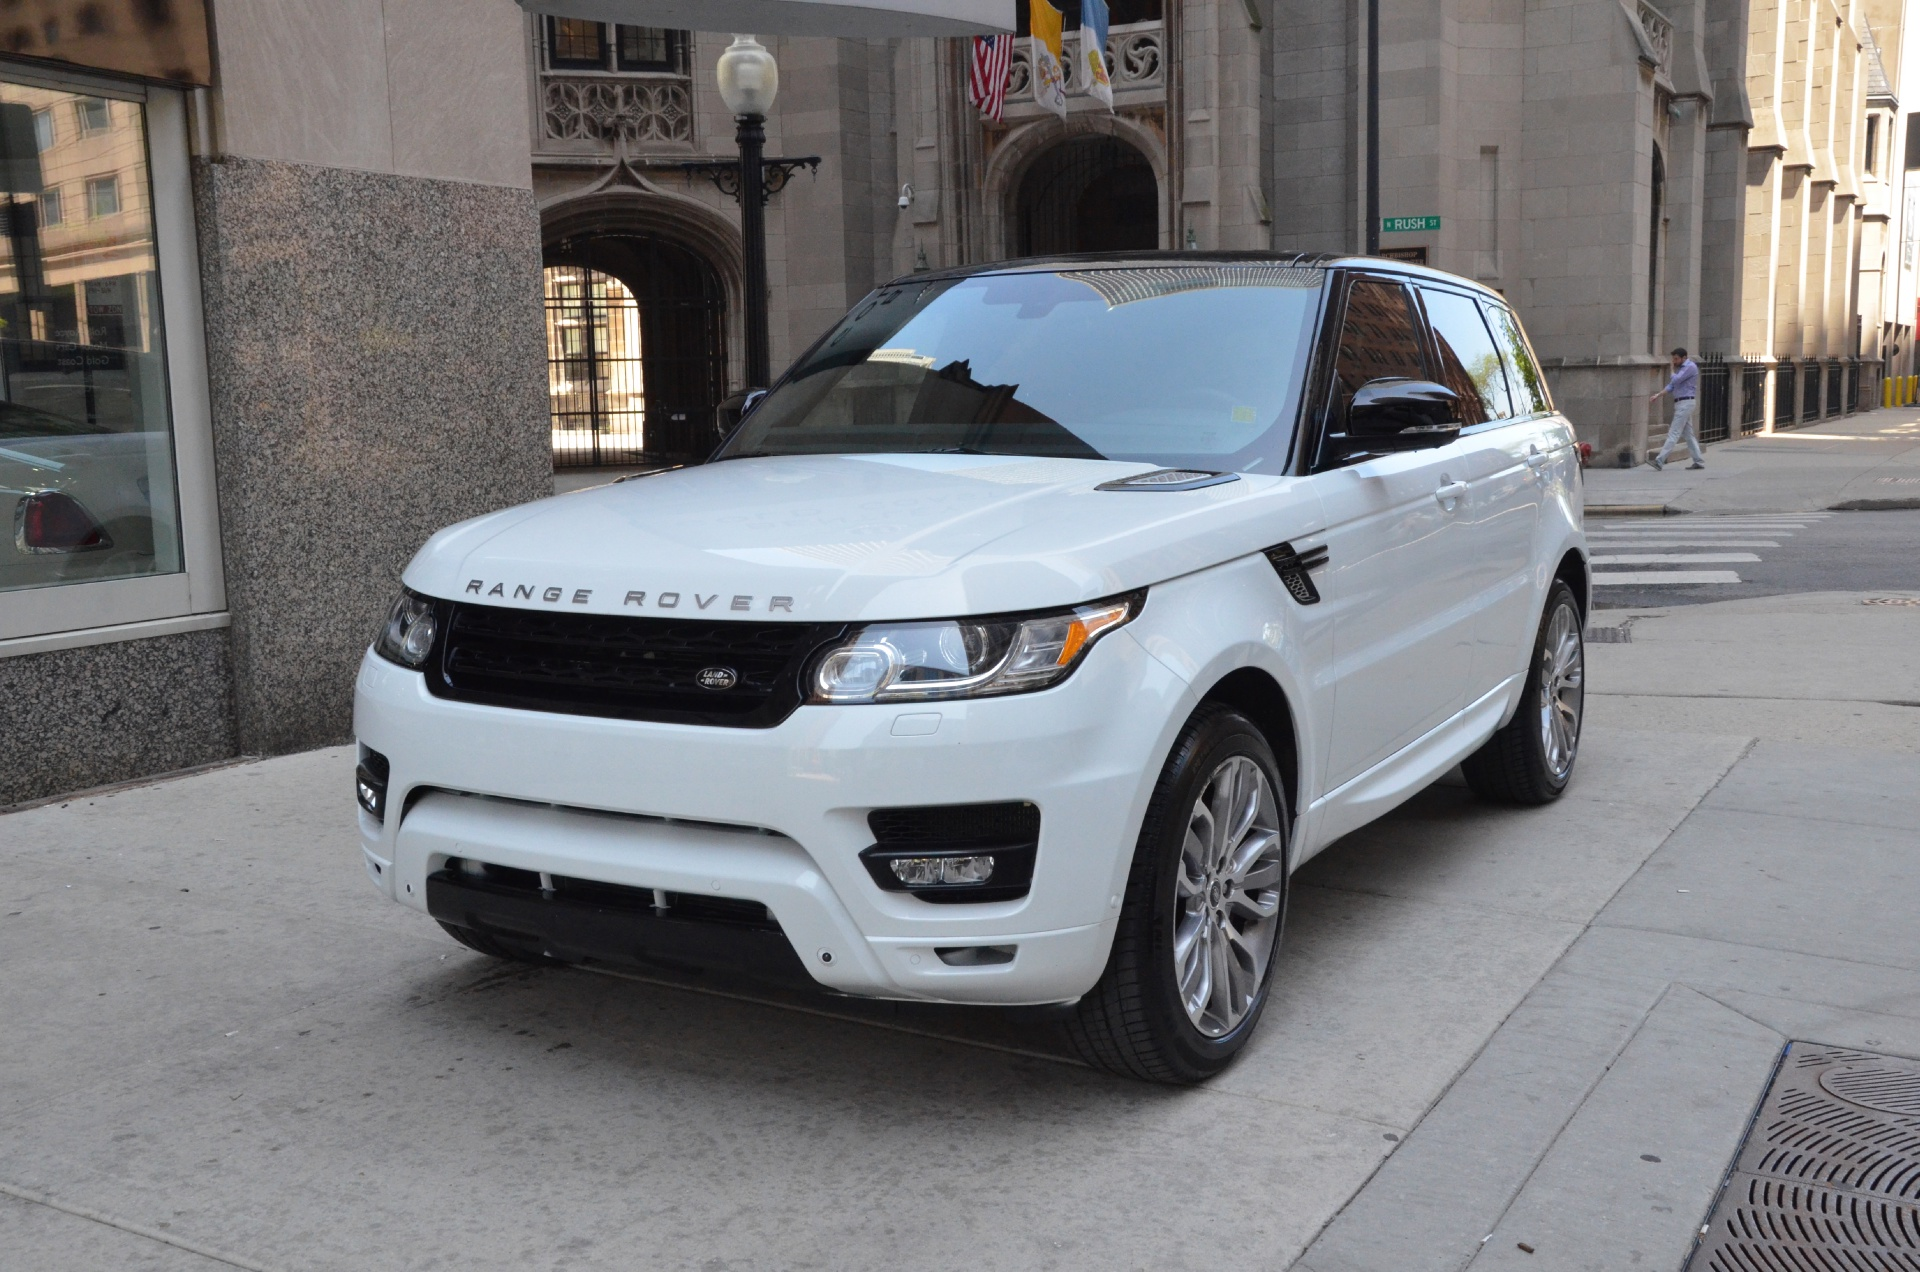 2014 Land Rover Range Rover Sport Supercharged Stock GC1414 for